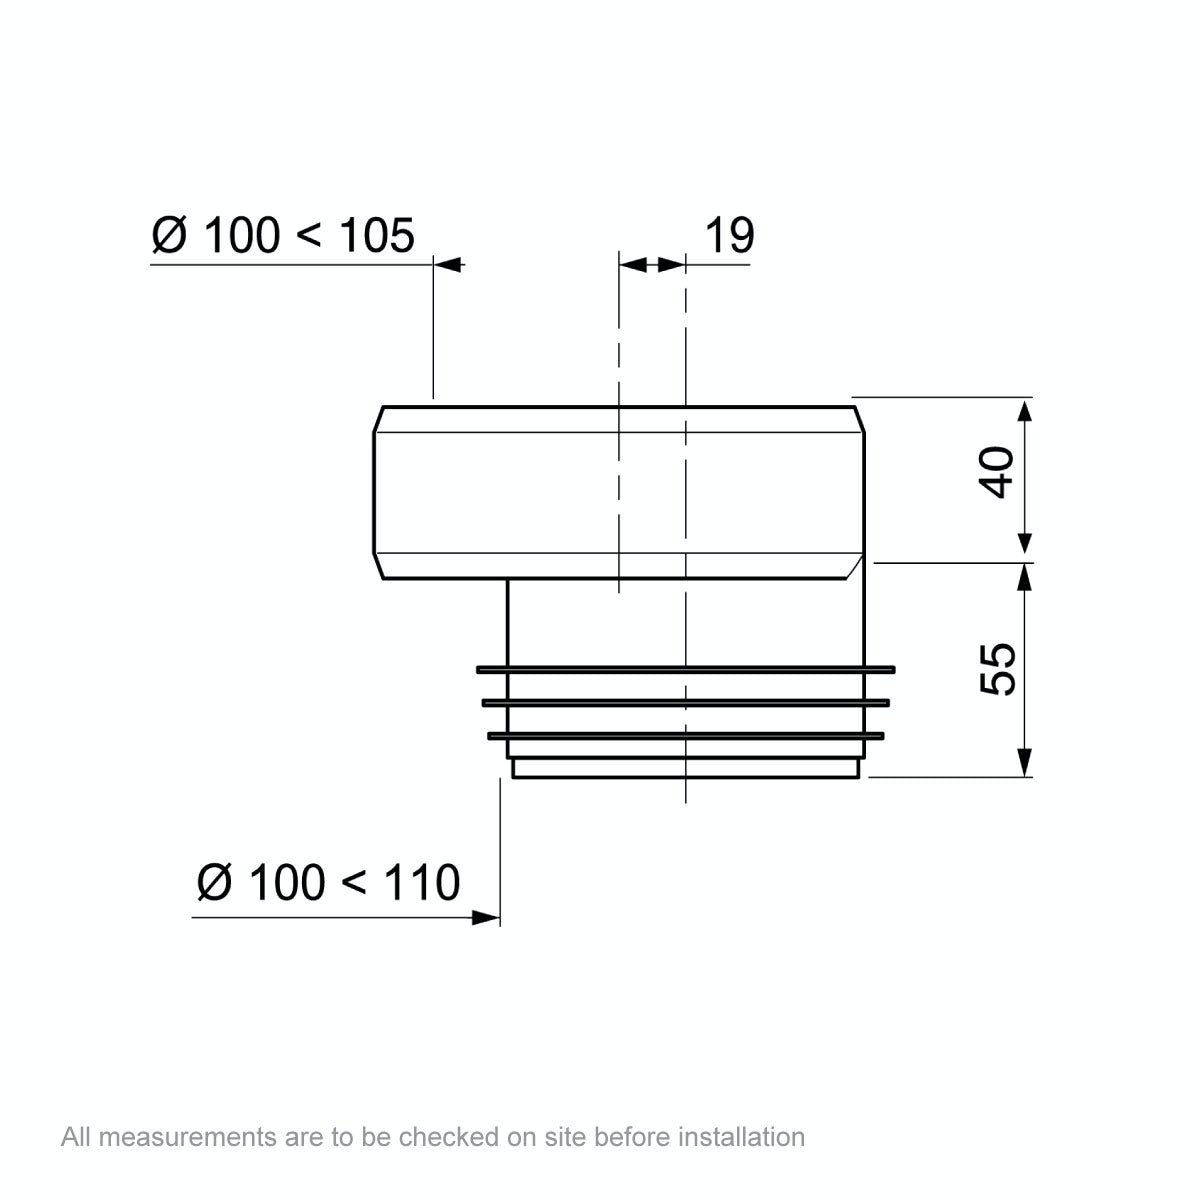 Dimensions for Macdee Wirquin offset Pan Connector